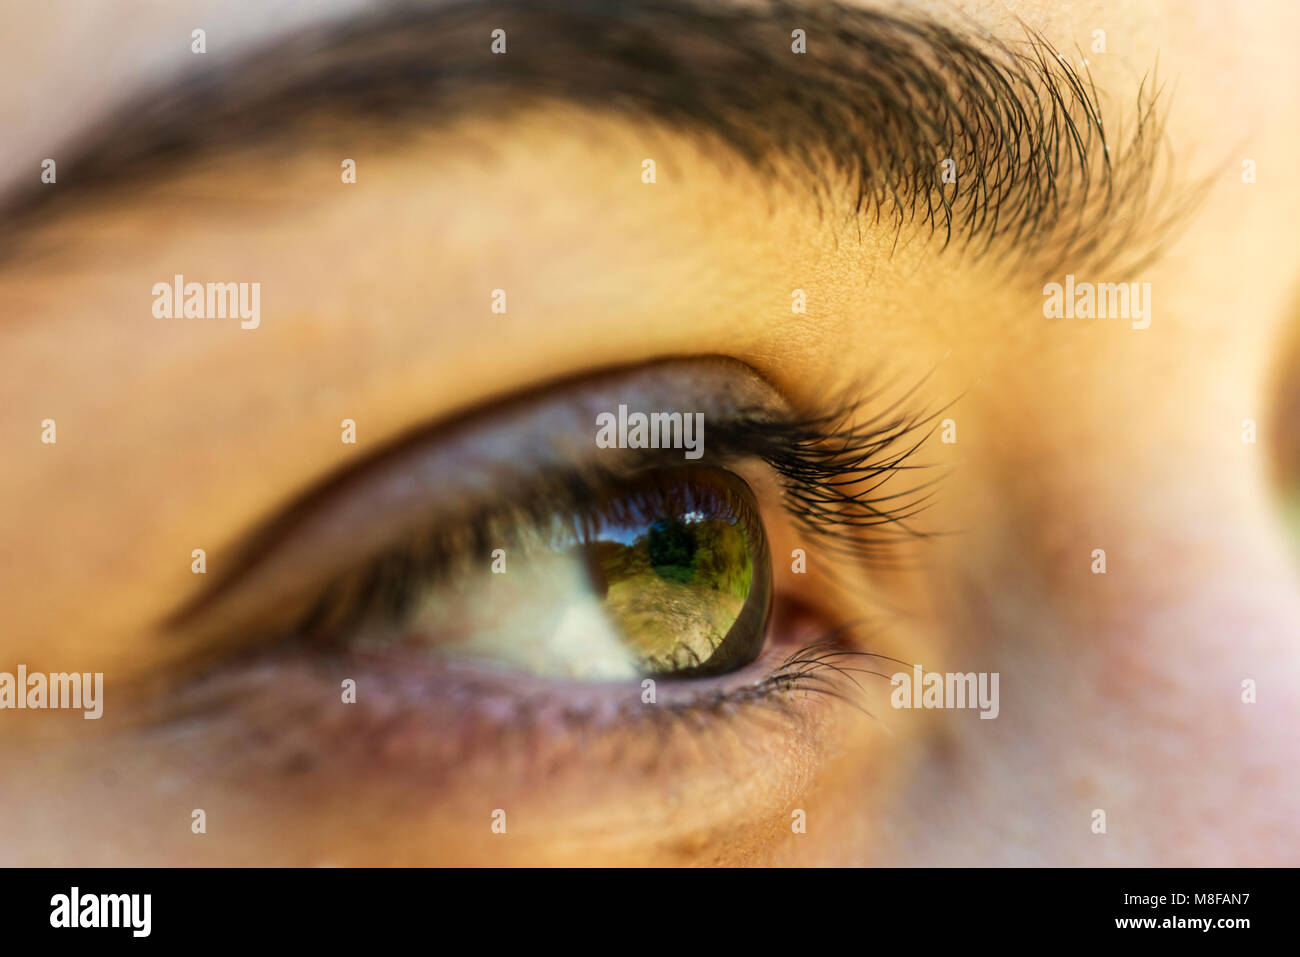 The brown eye of a girl reflecting the green field - Stock Image